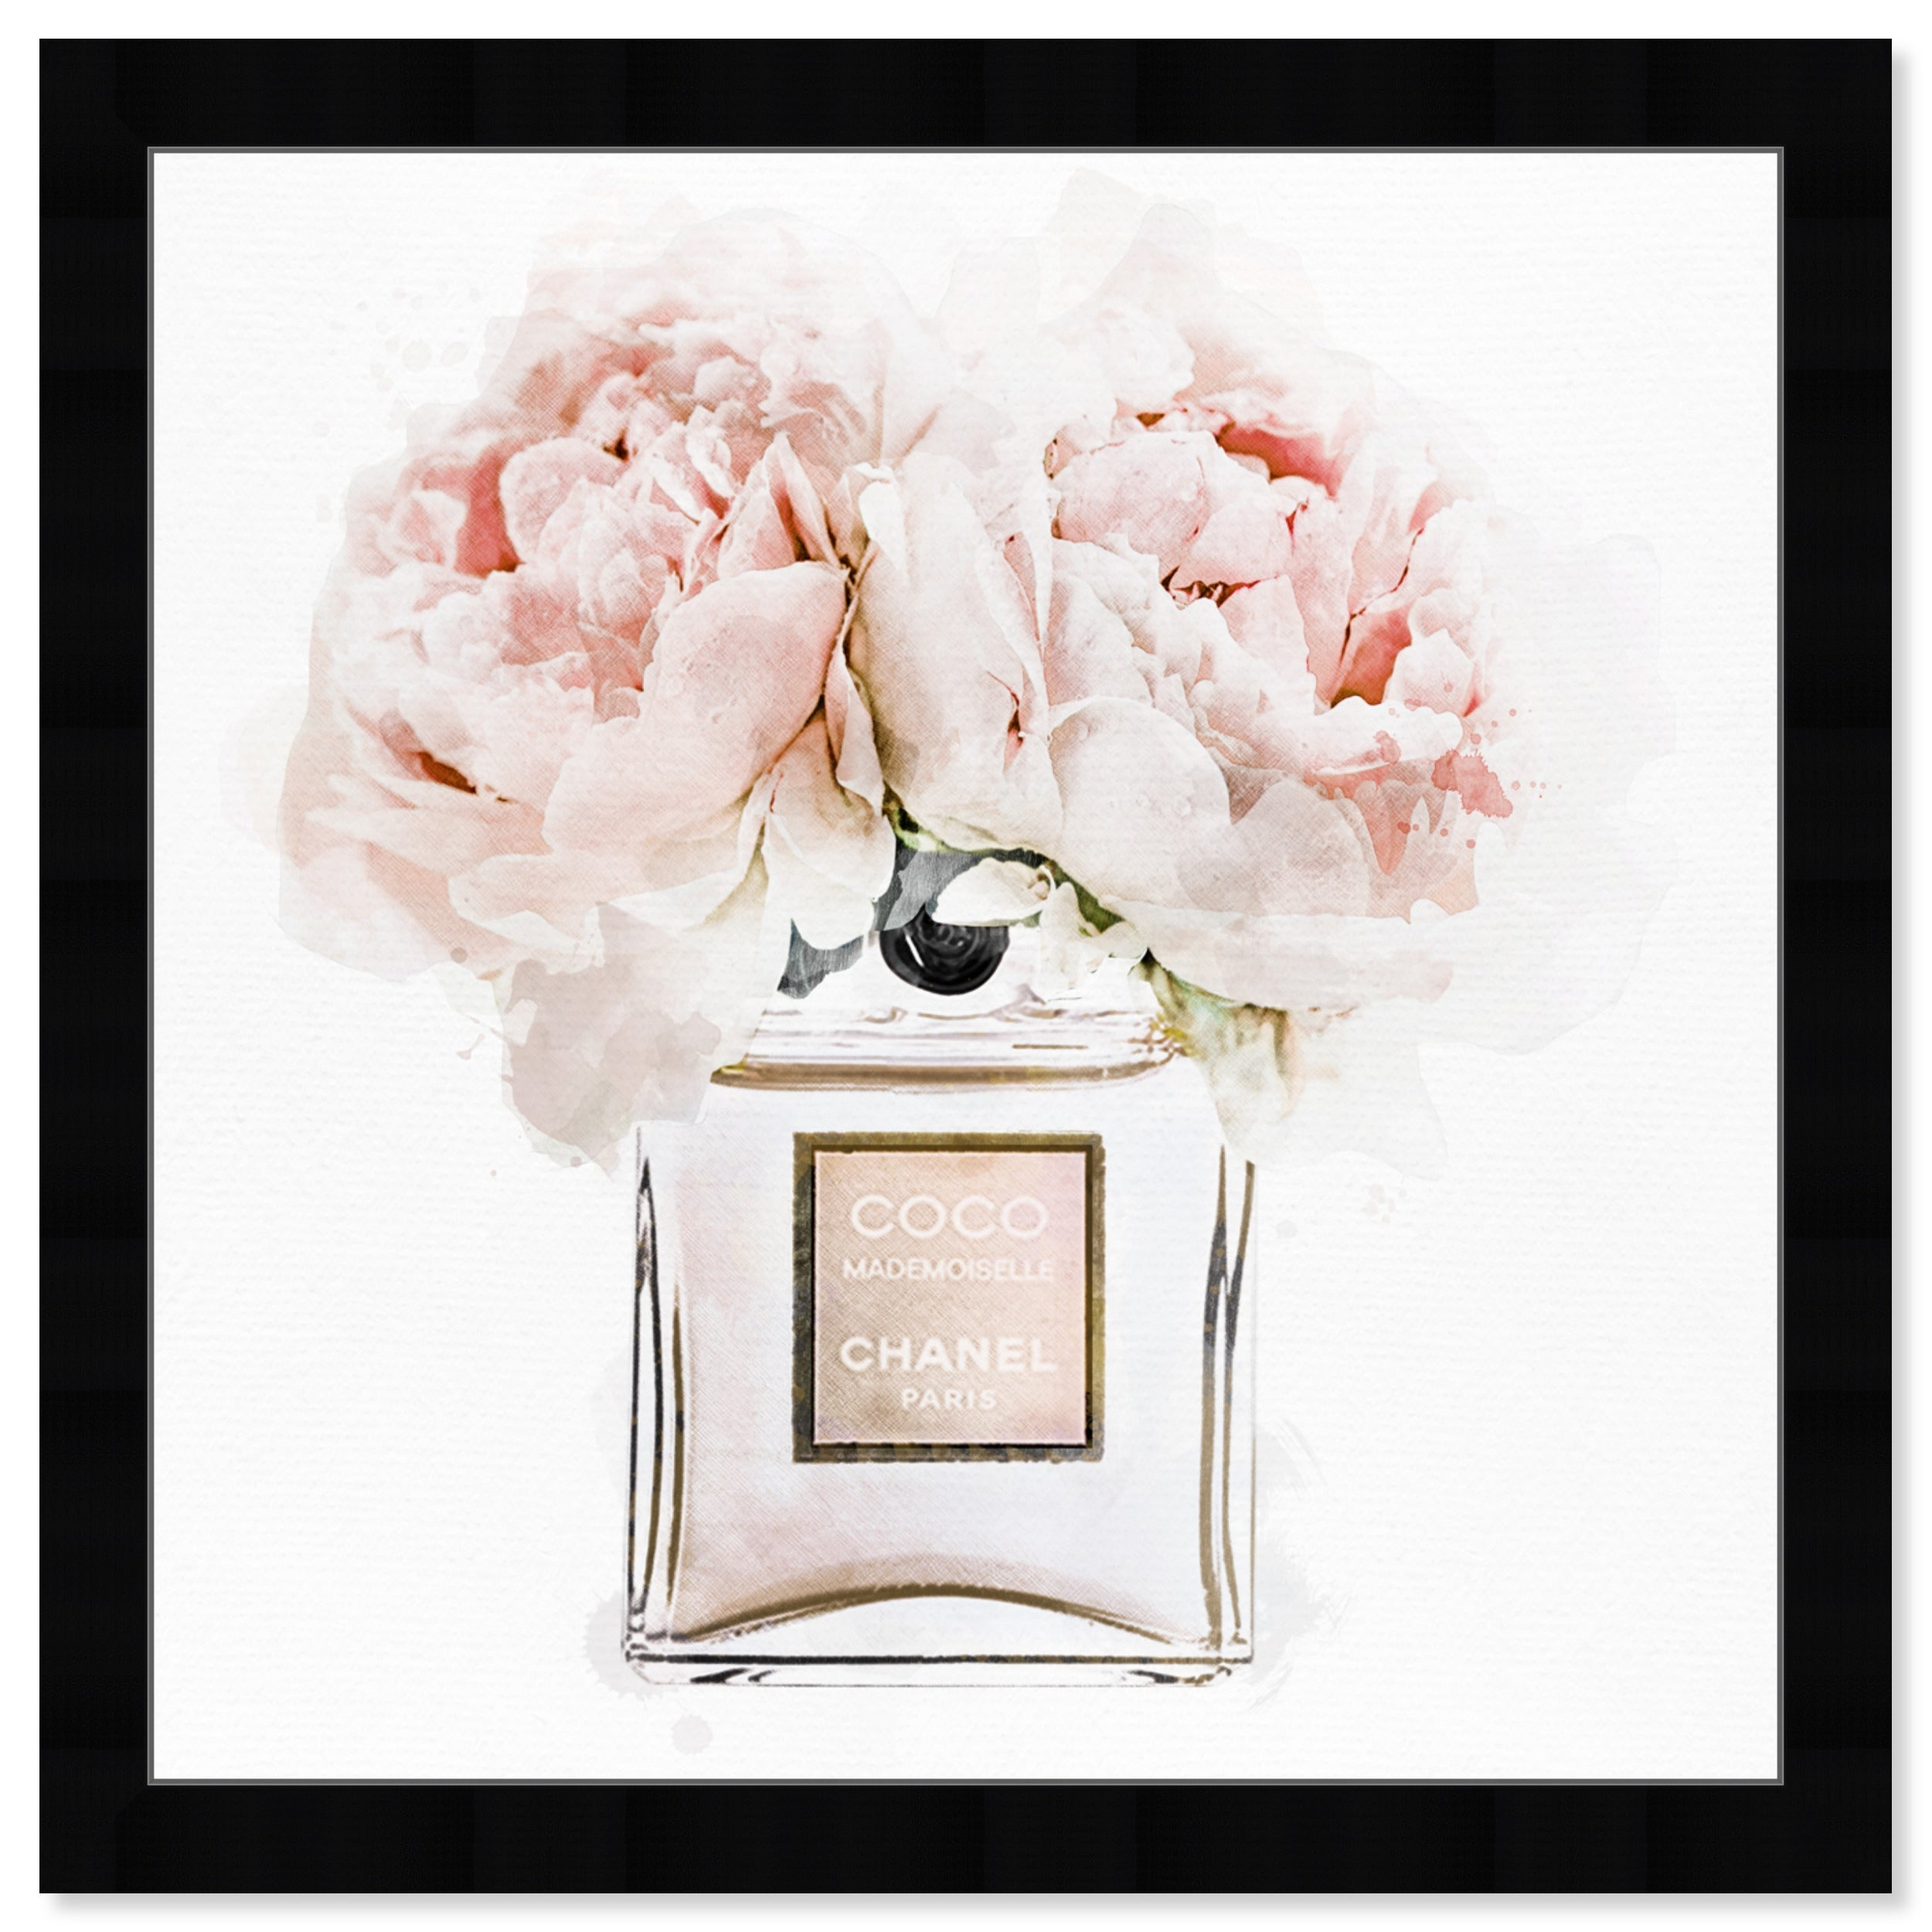 Shop For Oliver Gal Dawn Morning Bouquet Peach Fashion And Glam Framed Wall Art Prints Perfumes White Pink Get Free Delivery On Everything At Overstock Your Online Art Gallery Store Get 5 In Rewards With Club O 31287742